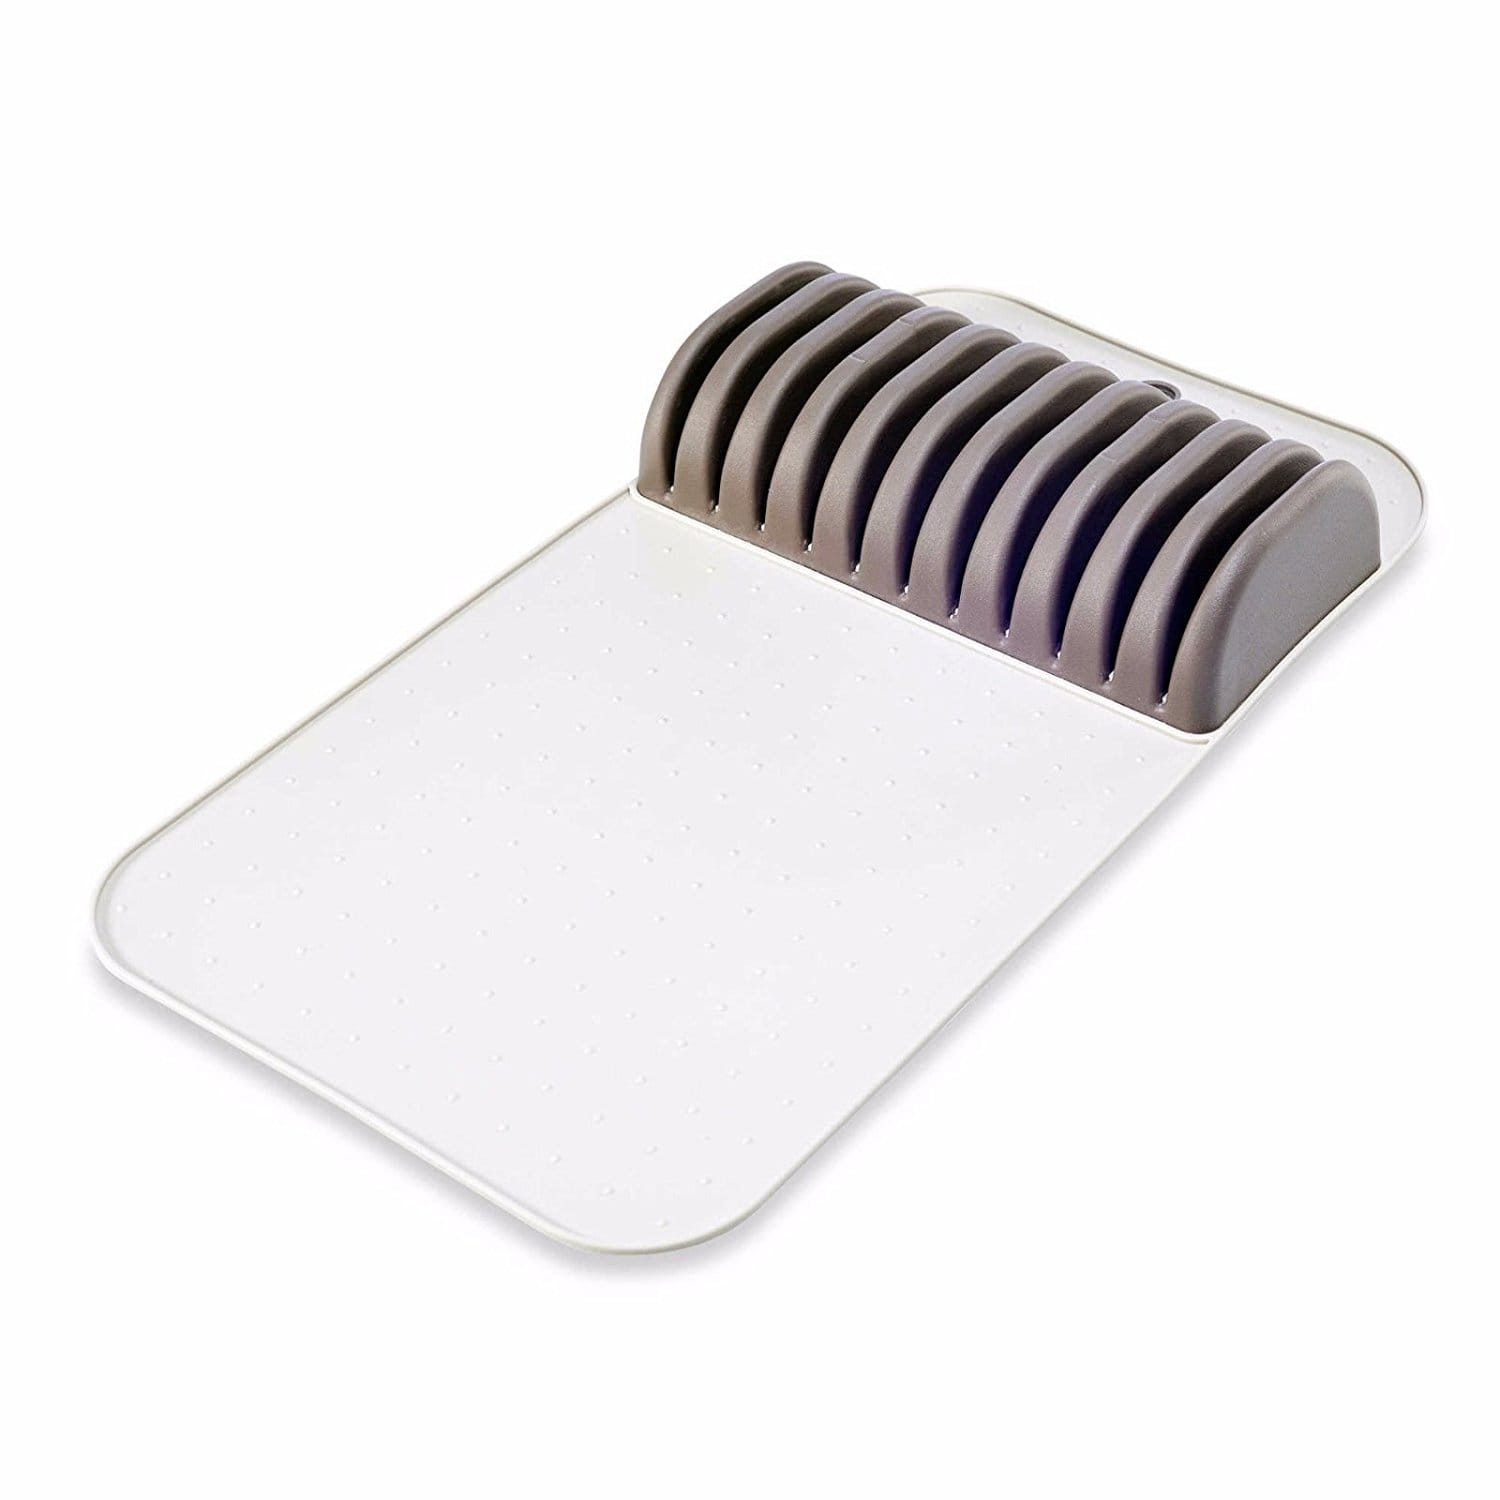 Safe in-Drawer Knife Mat Holds up to 11 Knives $12.6 @Amazon